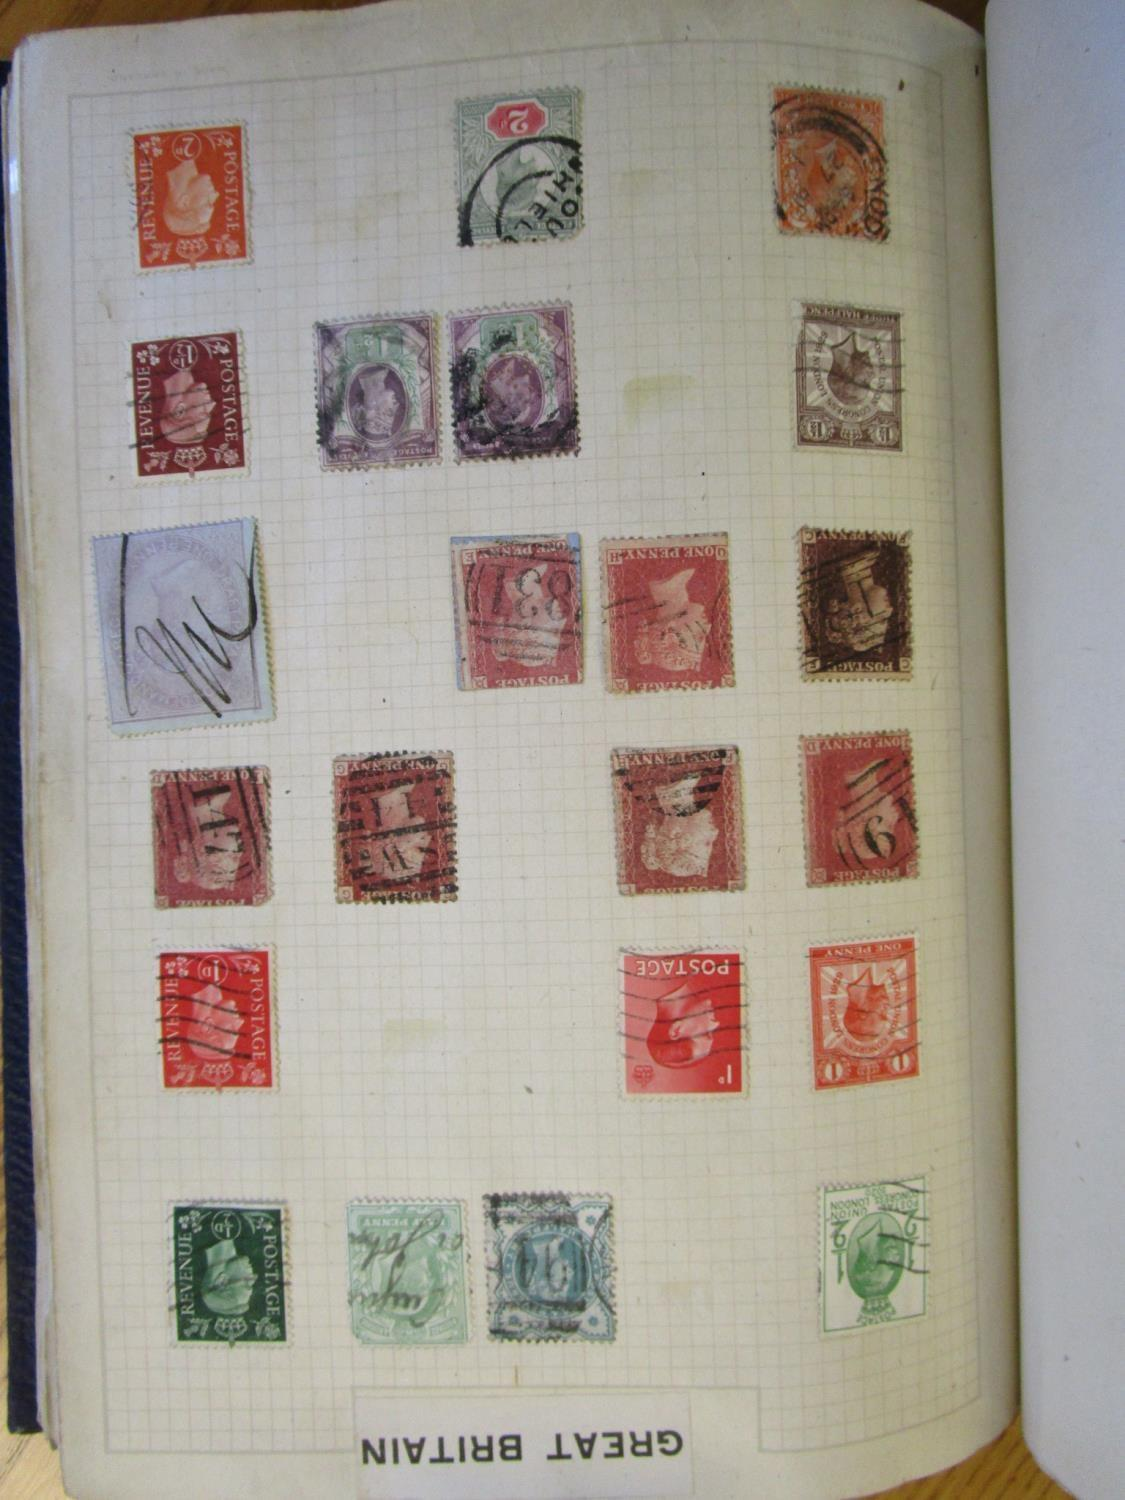 Mixed stamps from around the world mounted in albums and loose to include Victorian Penny Reds, - Image 16 of 18